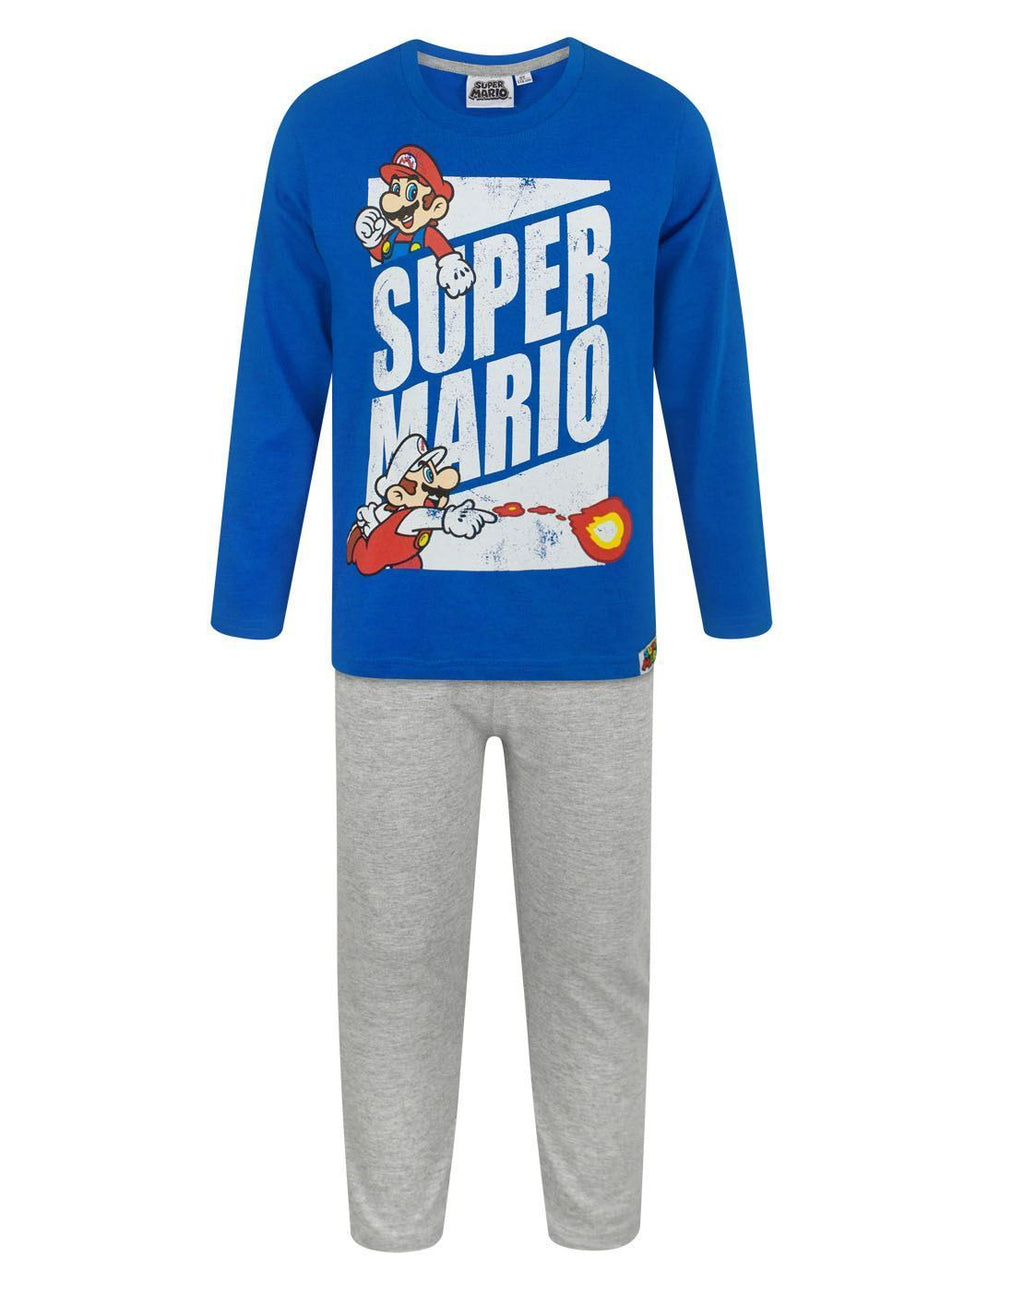 Super Mario Fire Ball Boy's Pyjamas